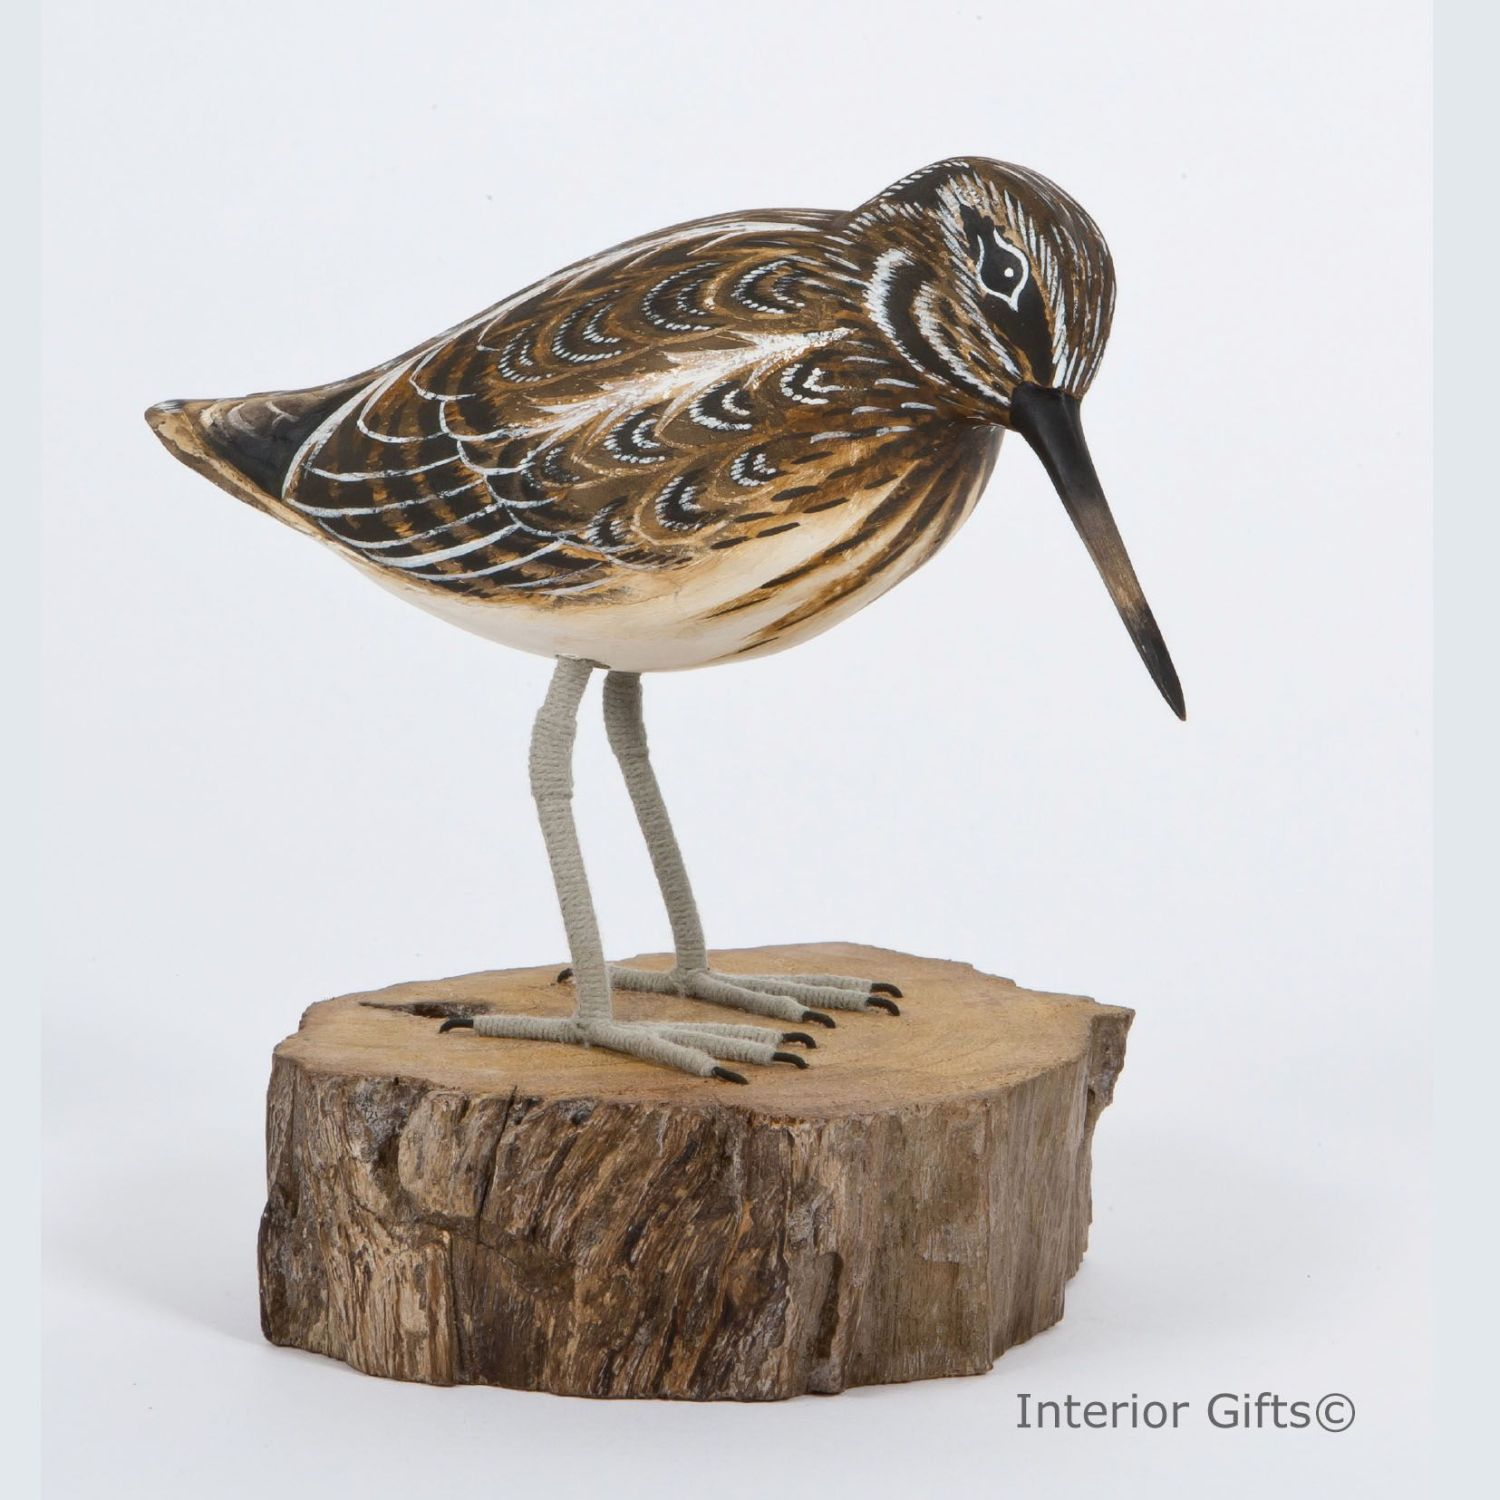 Archipelago Jack Snipe On Aged Natural Wooden Base Bird Wood Carving